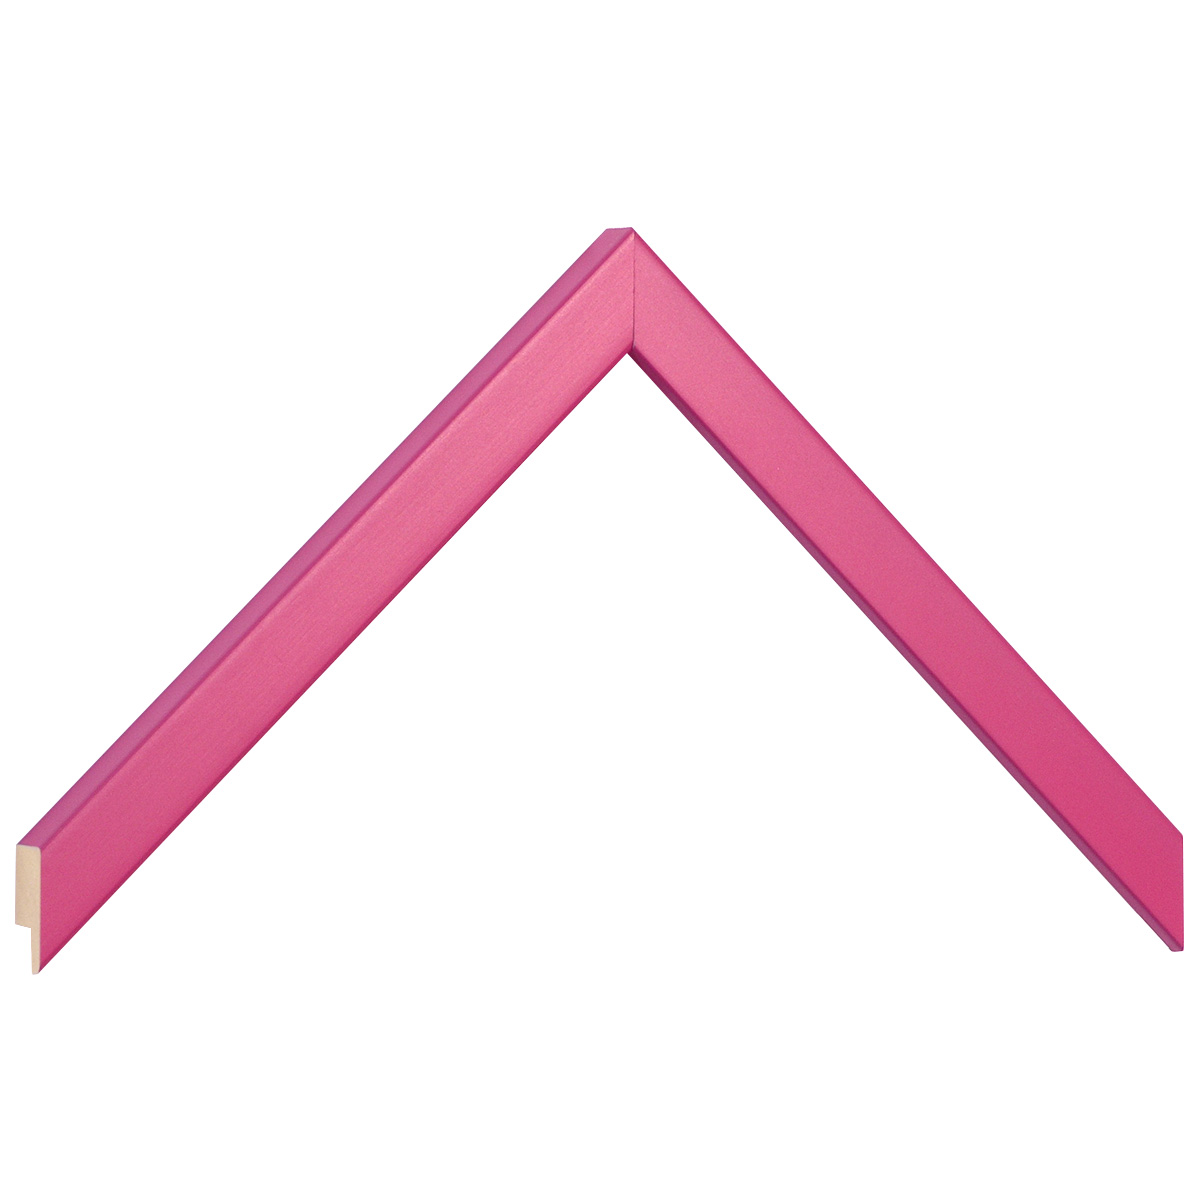 Moulding ayous width 15mm height 14 - fuchsia